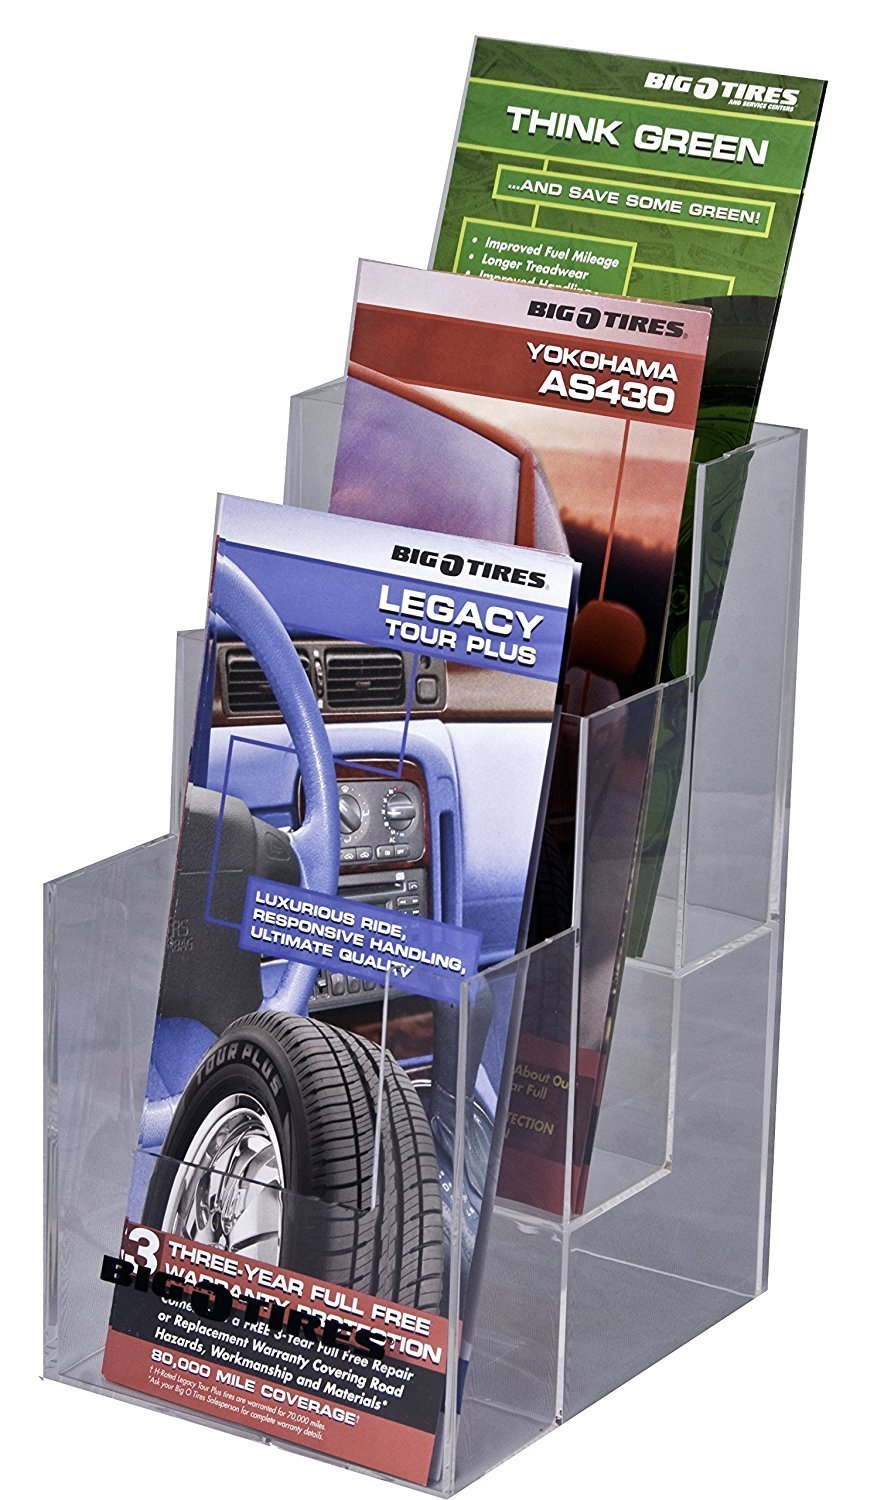 Clear-Ad - LHF-S103 - Acrylic 3 Tier Trifold Brochure Holder - Plastic Literature Holder for Flyers, Booklets, Bills, Mail, Letters, Cards, Pamphlets, Maps (Pack of 16)